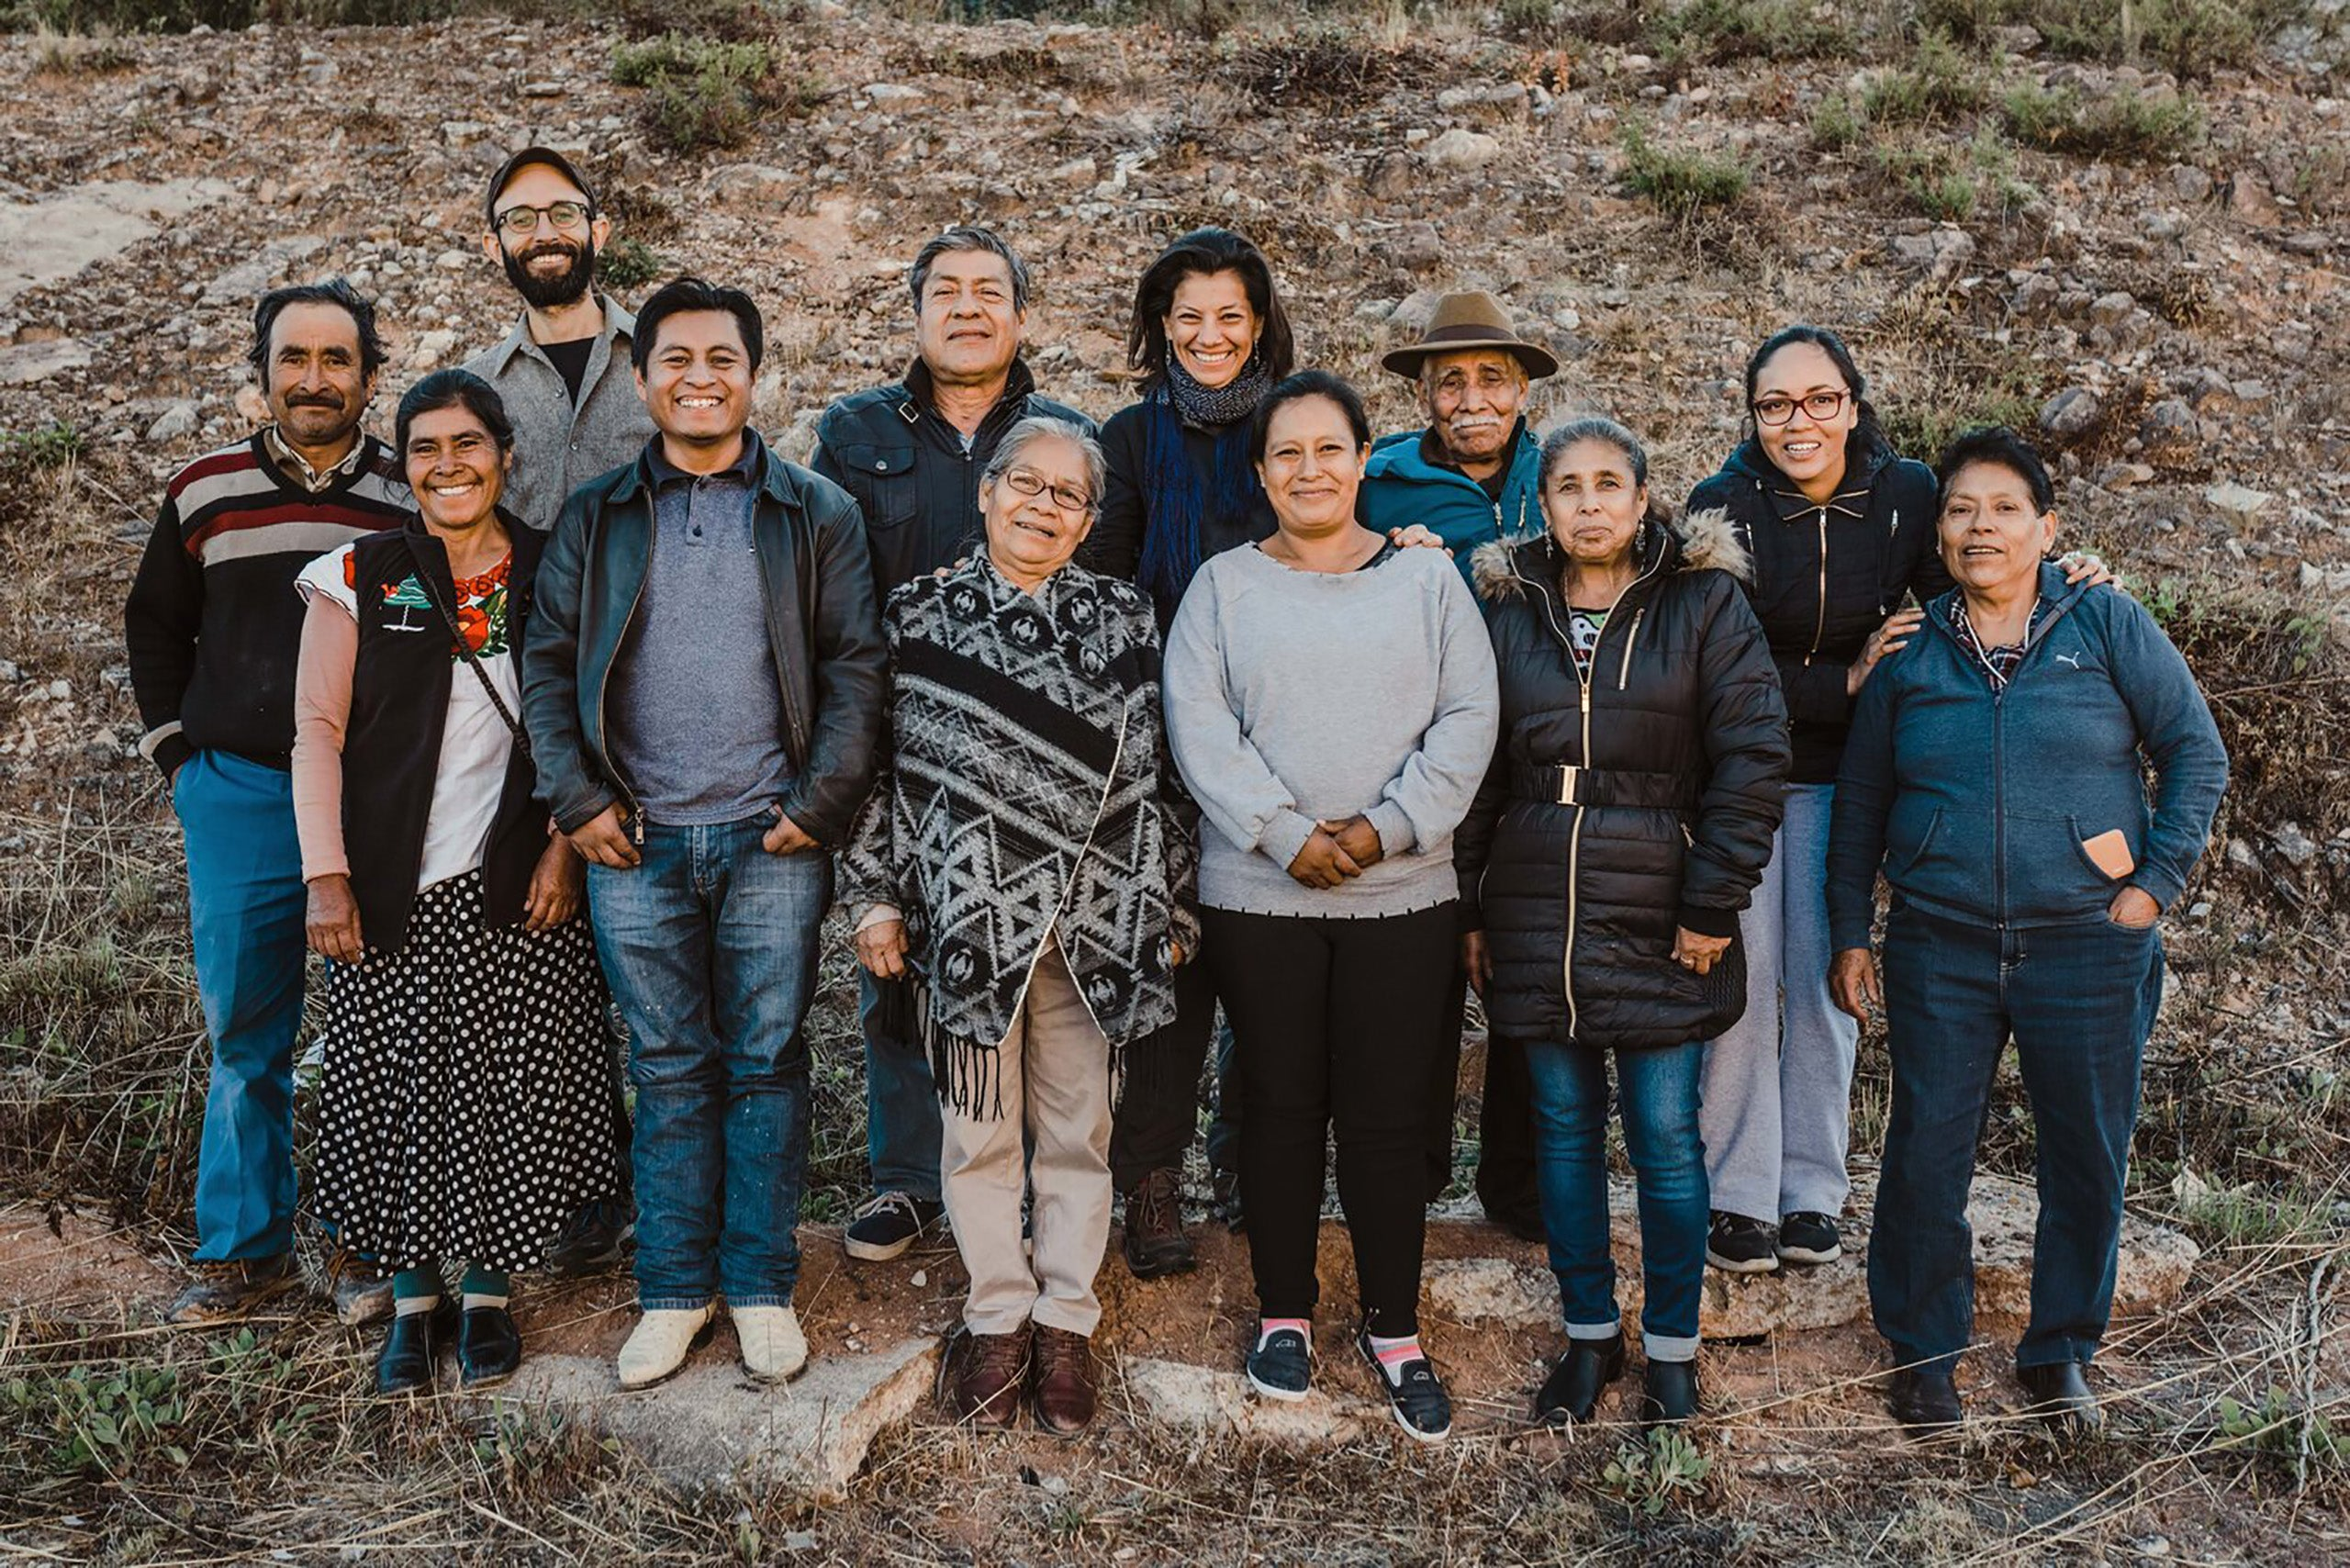 Mexican Artisan Collective Potters of Oaxaca Standing Together